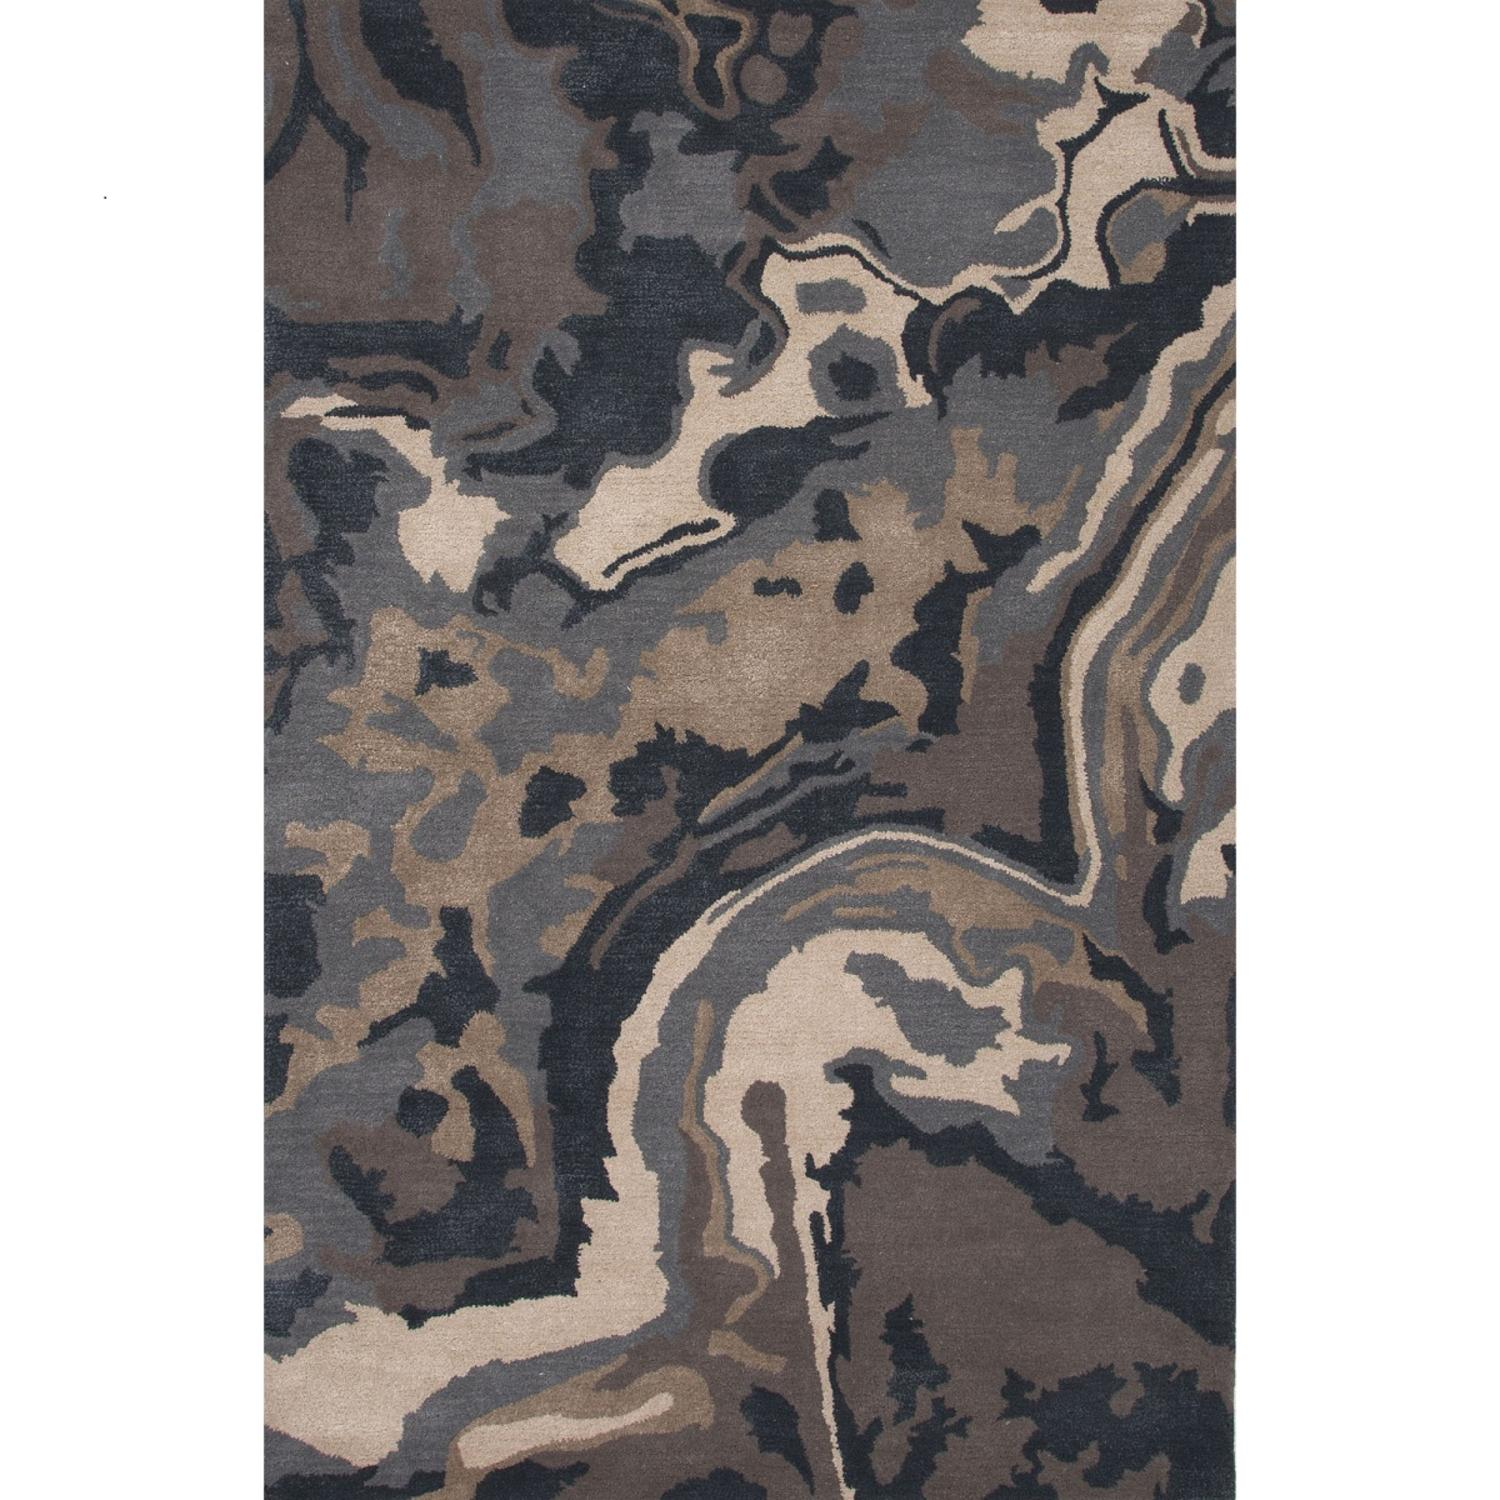 2' x 3' Charcoal Gray, Black and Tan Alabaster Modern Hand Tufted Wool and Art Silk Area Throw Rug